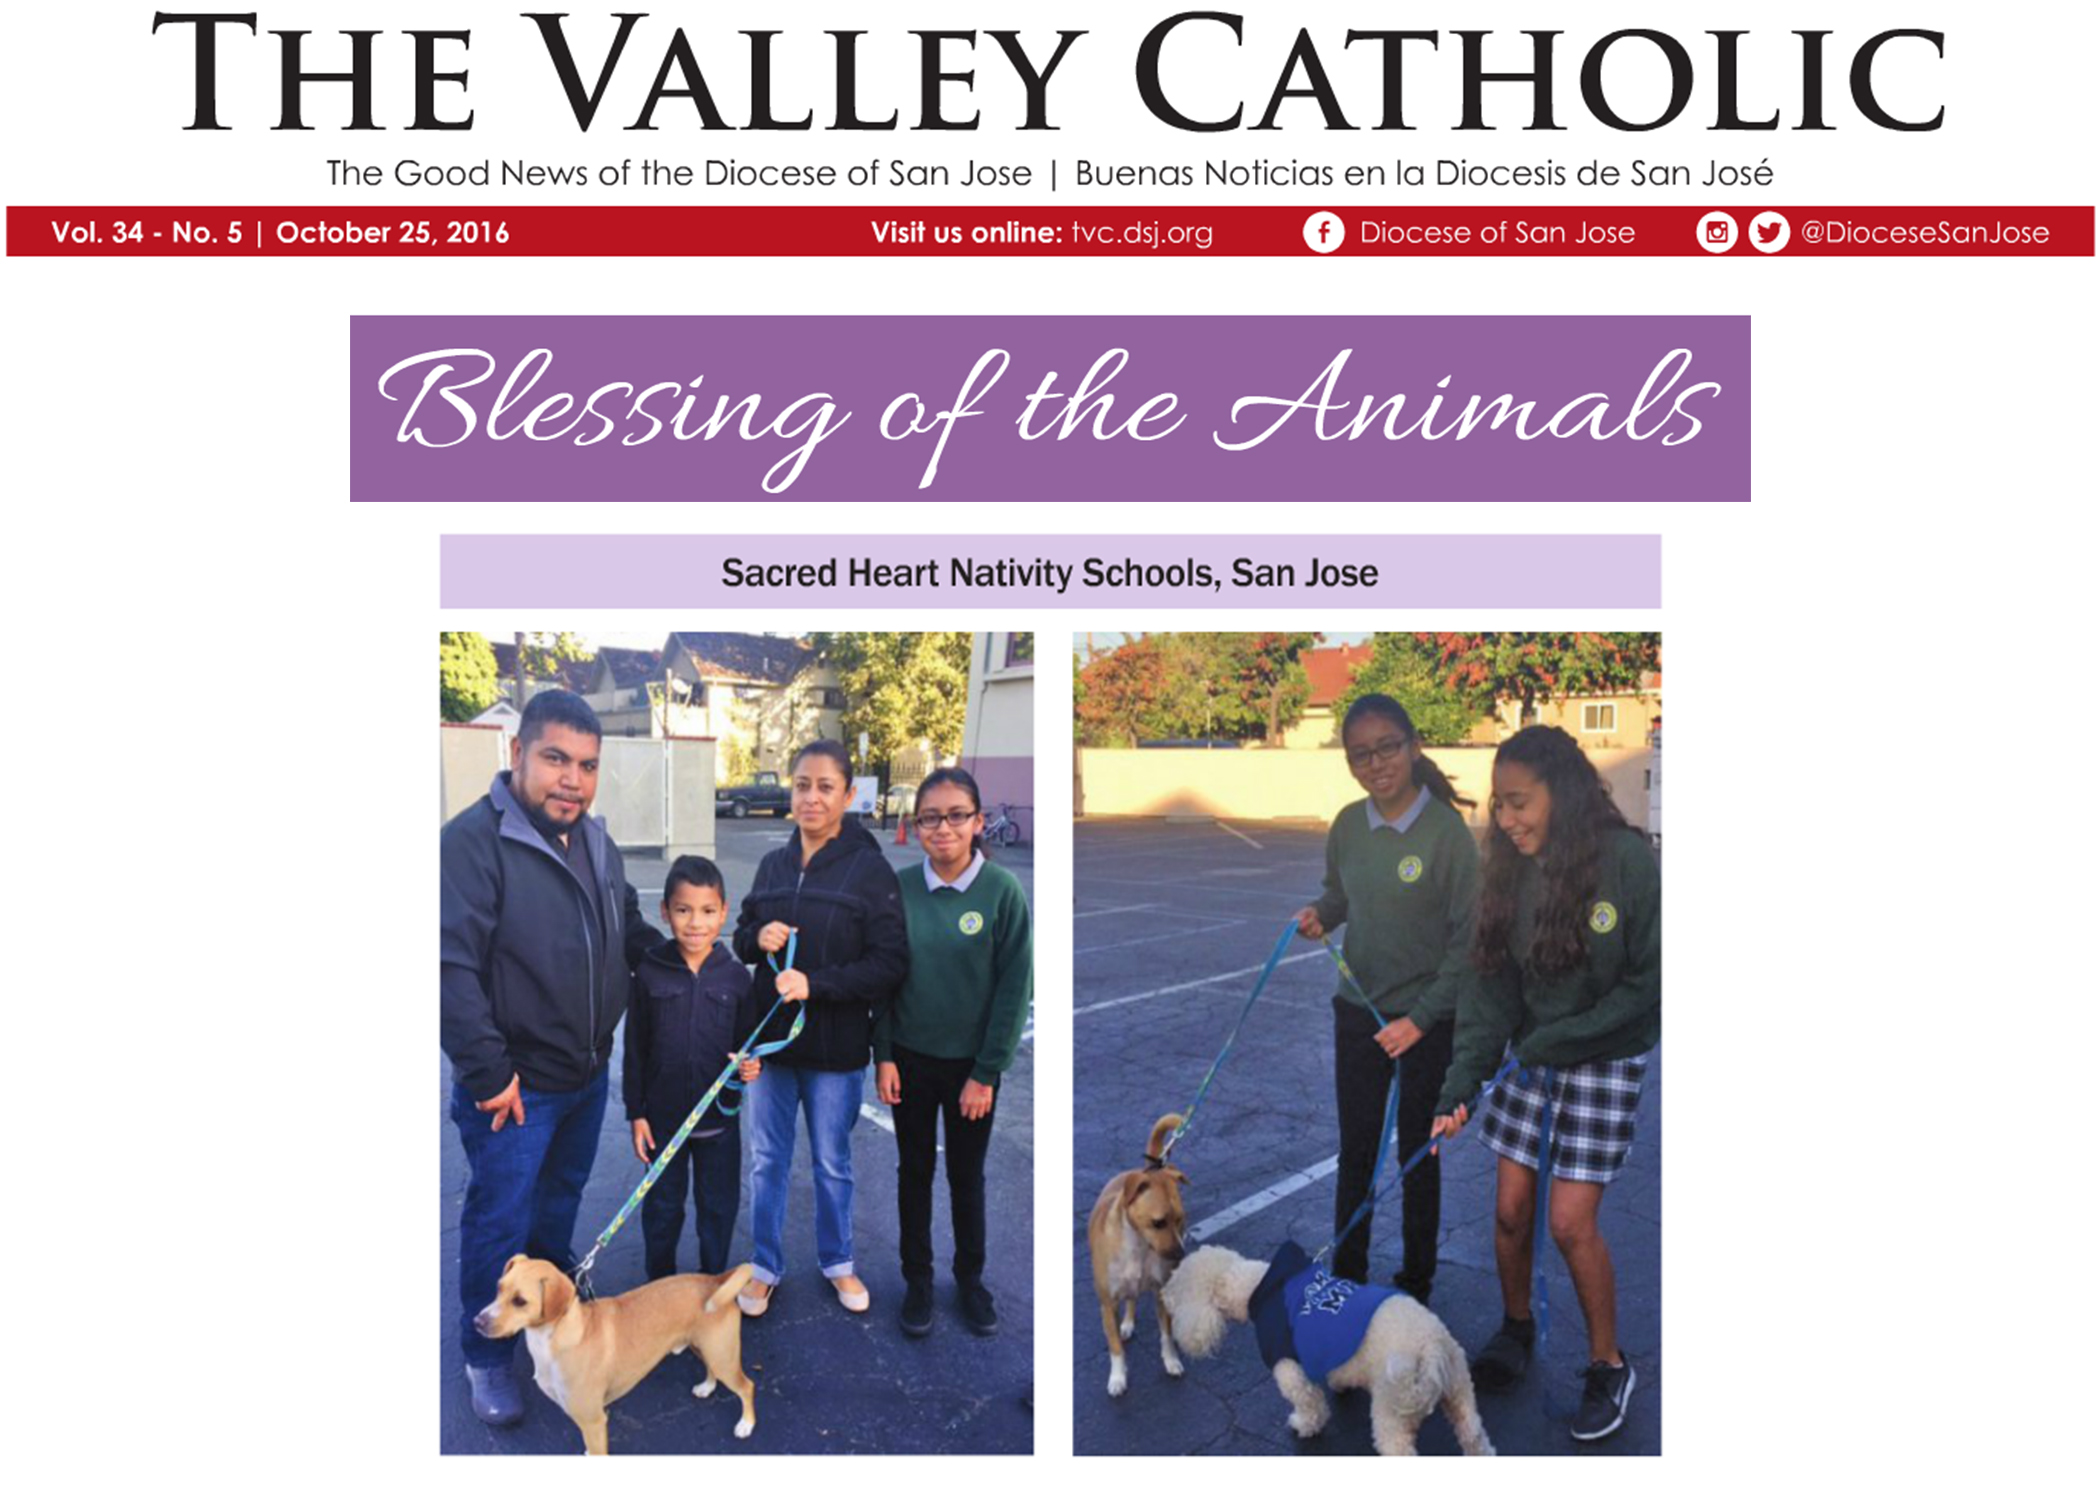 Videos and News Items - Sacred Heart Nativity Schools